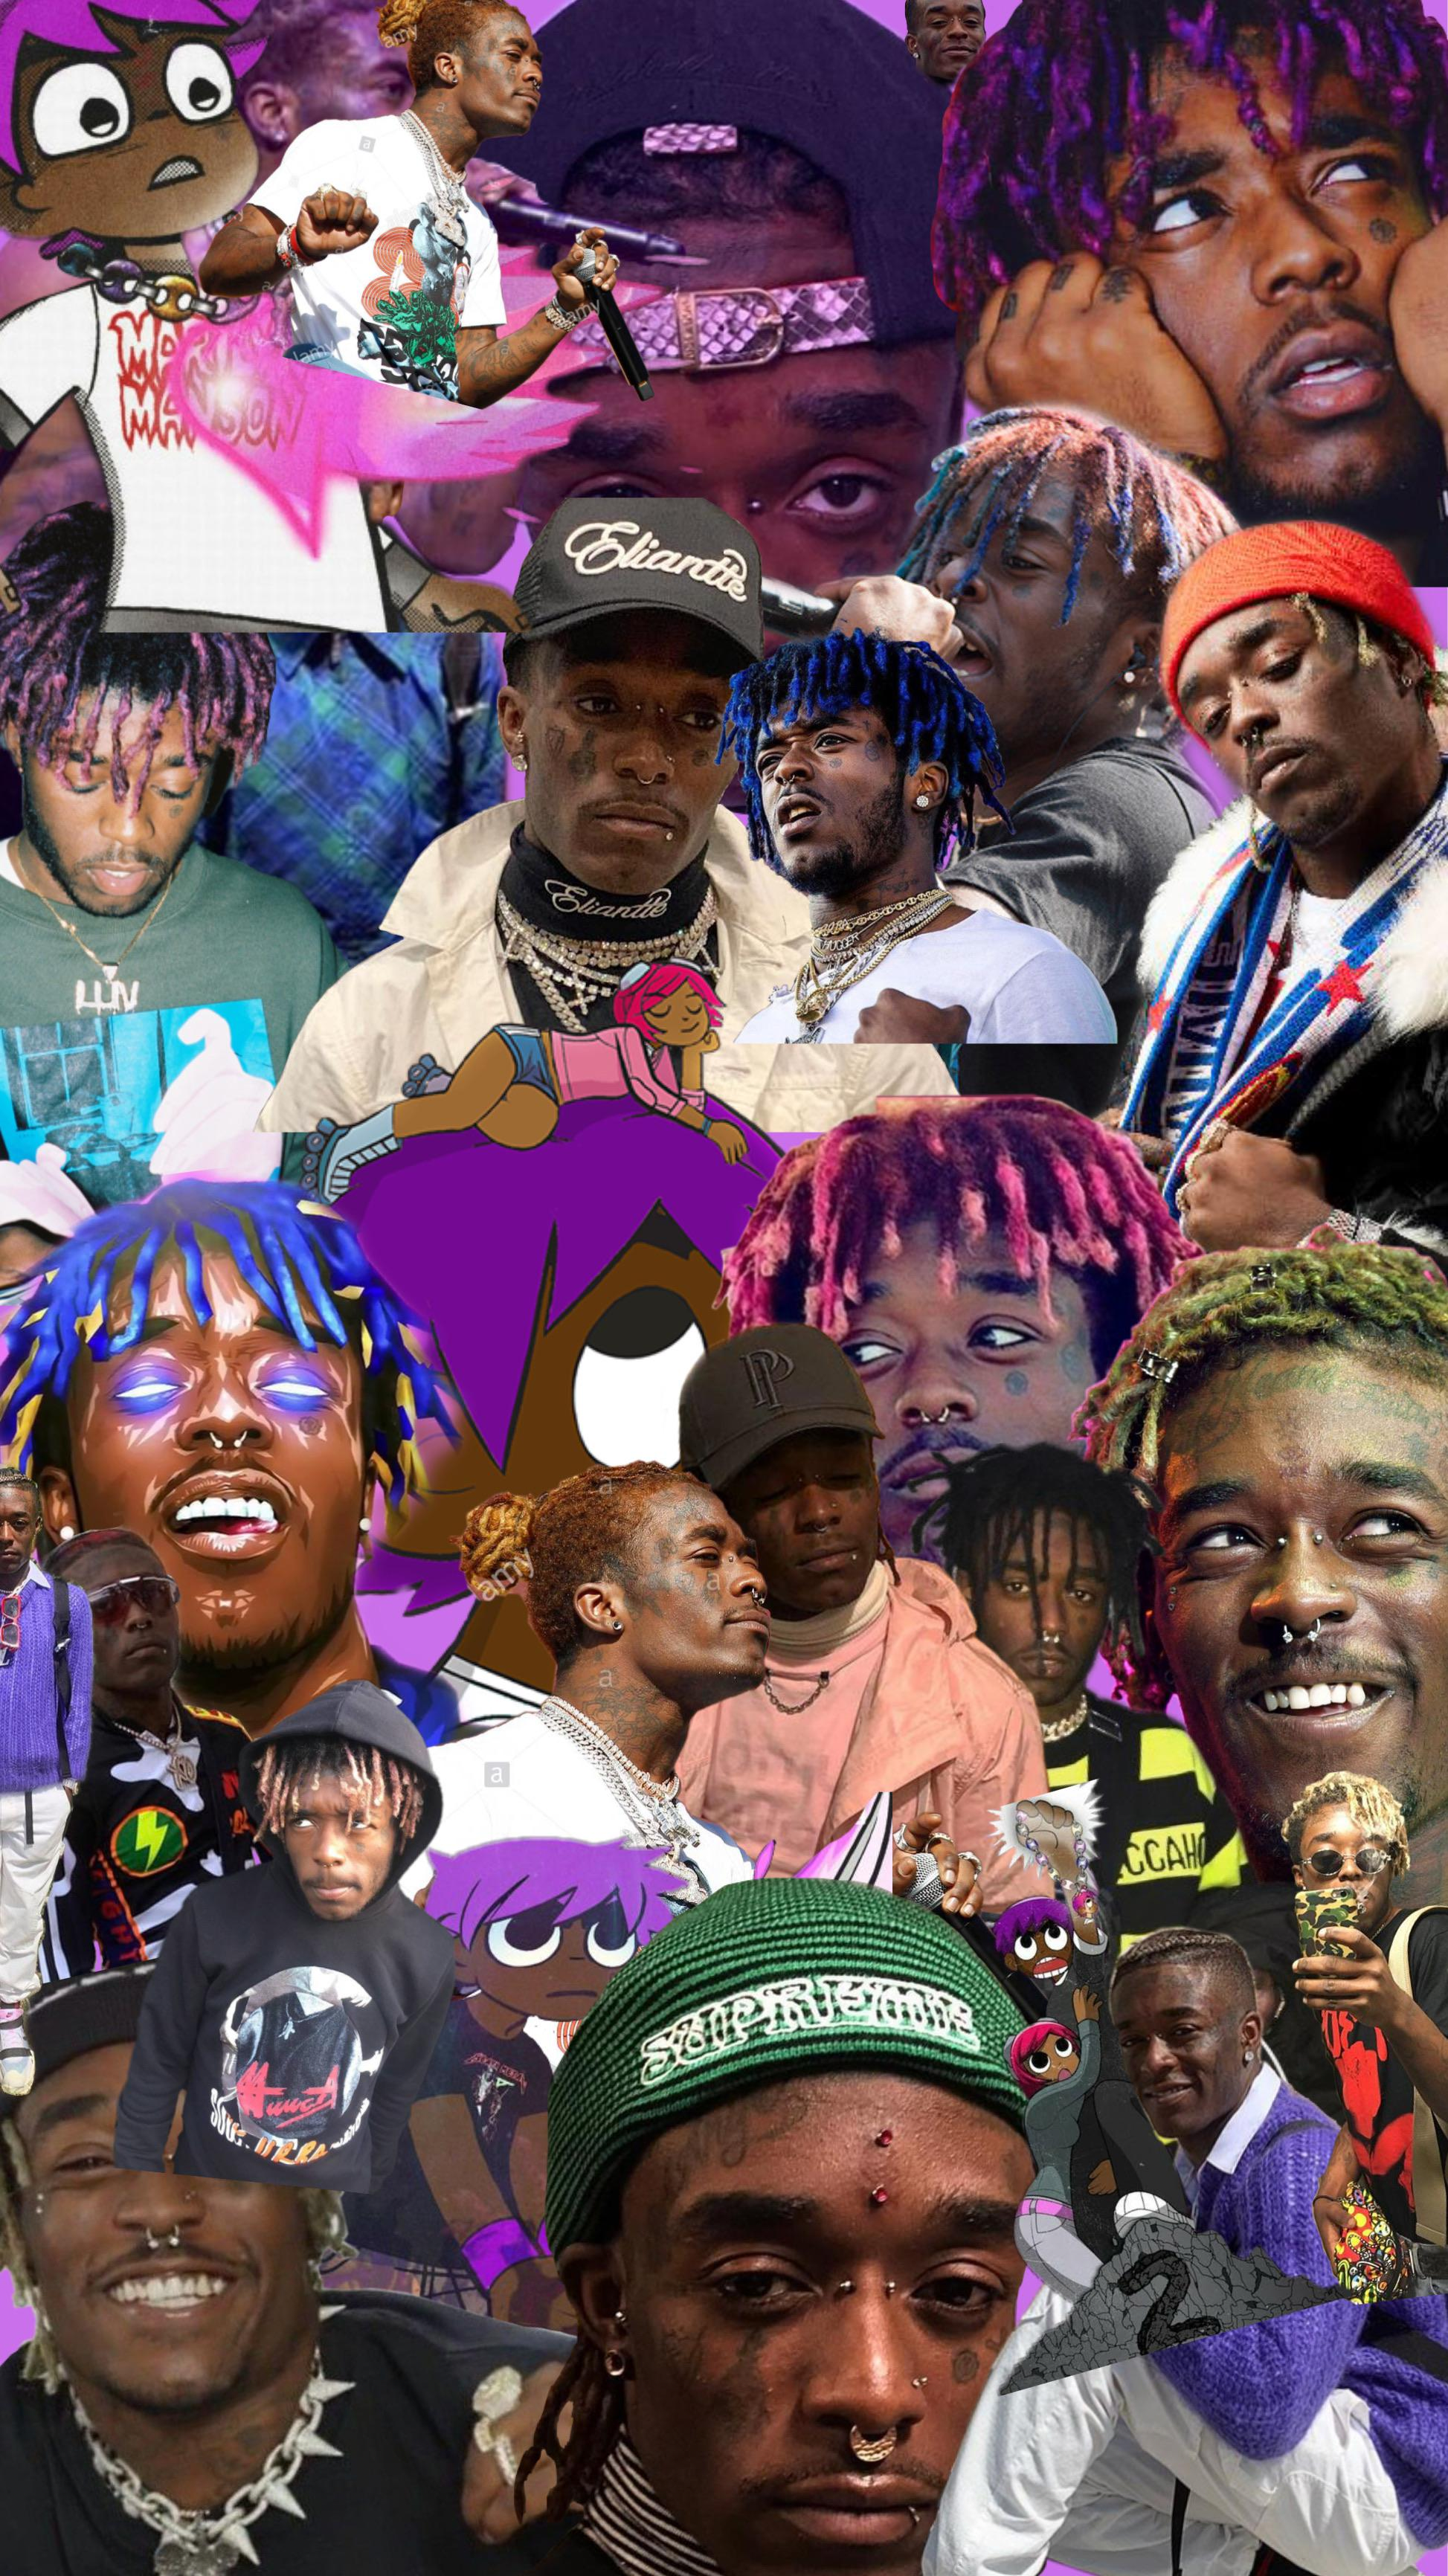 Lil Uzi Vert Collage 2974960 Hd Wallpaper Backgrounds Download Download the perfect lil uzi vert pictures. lil uzi vert collage 2974960 hd